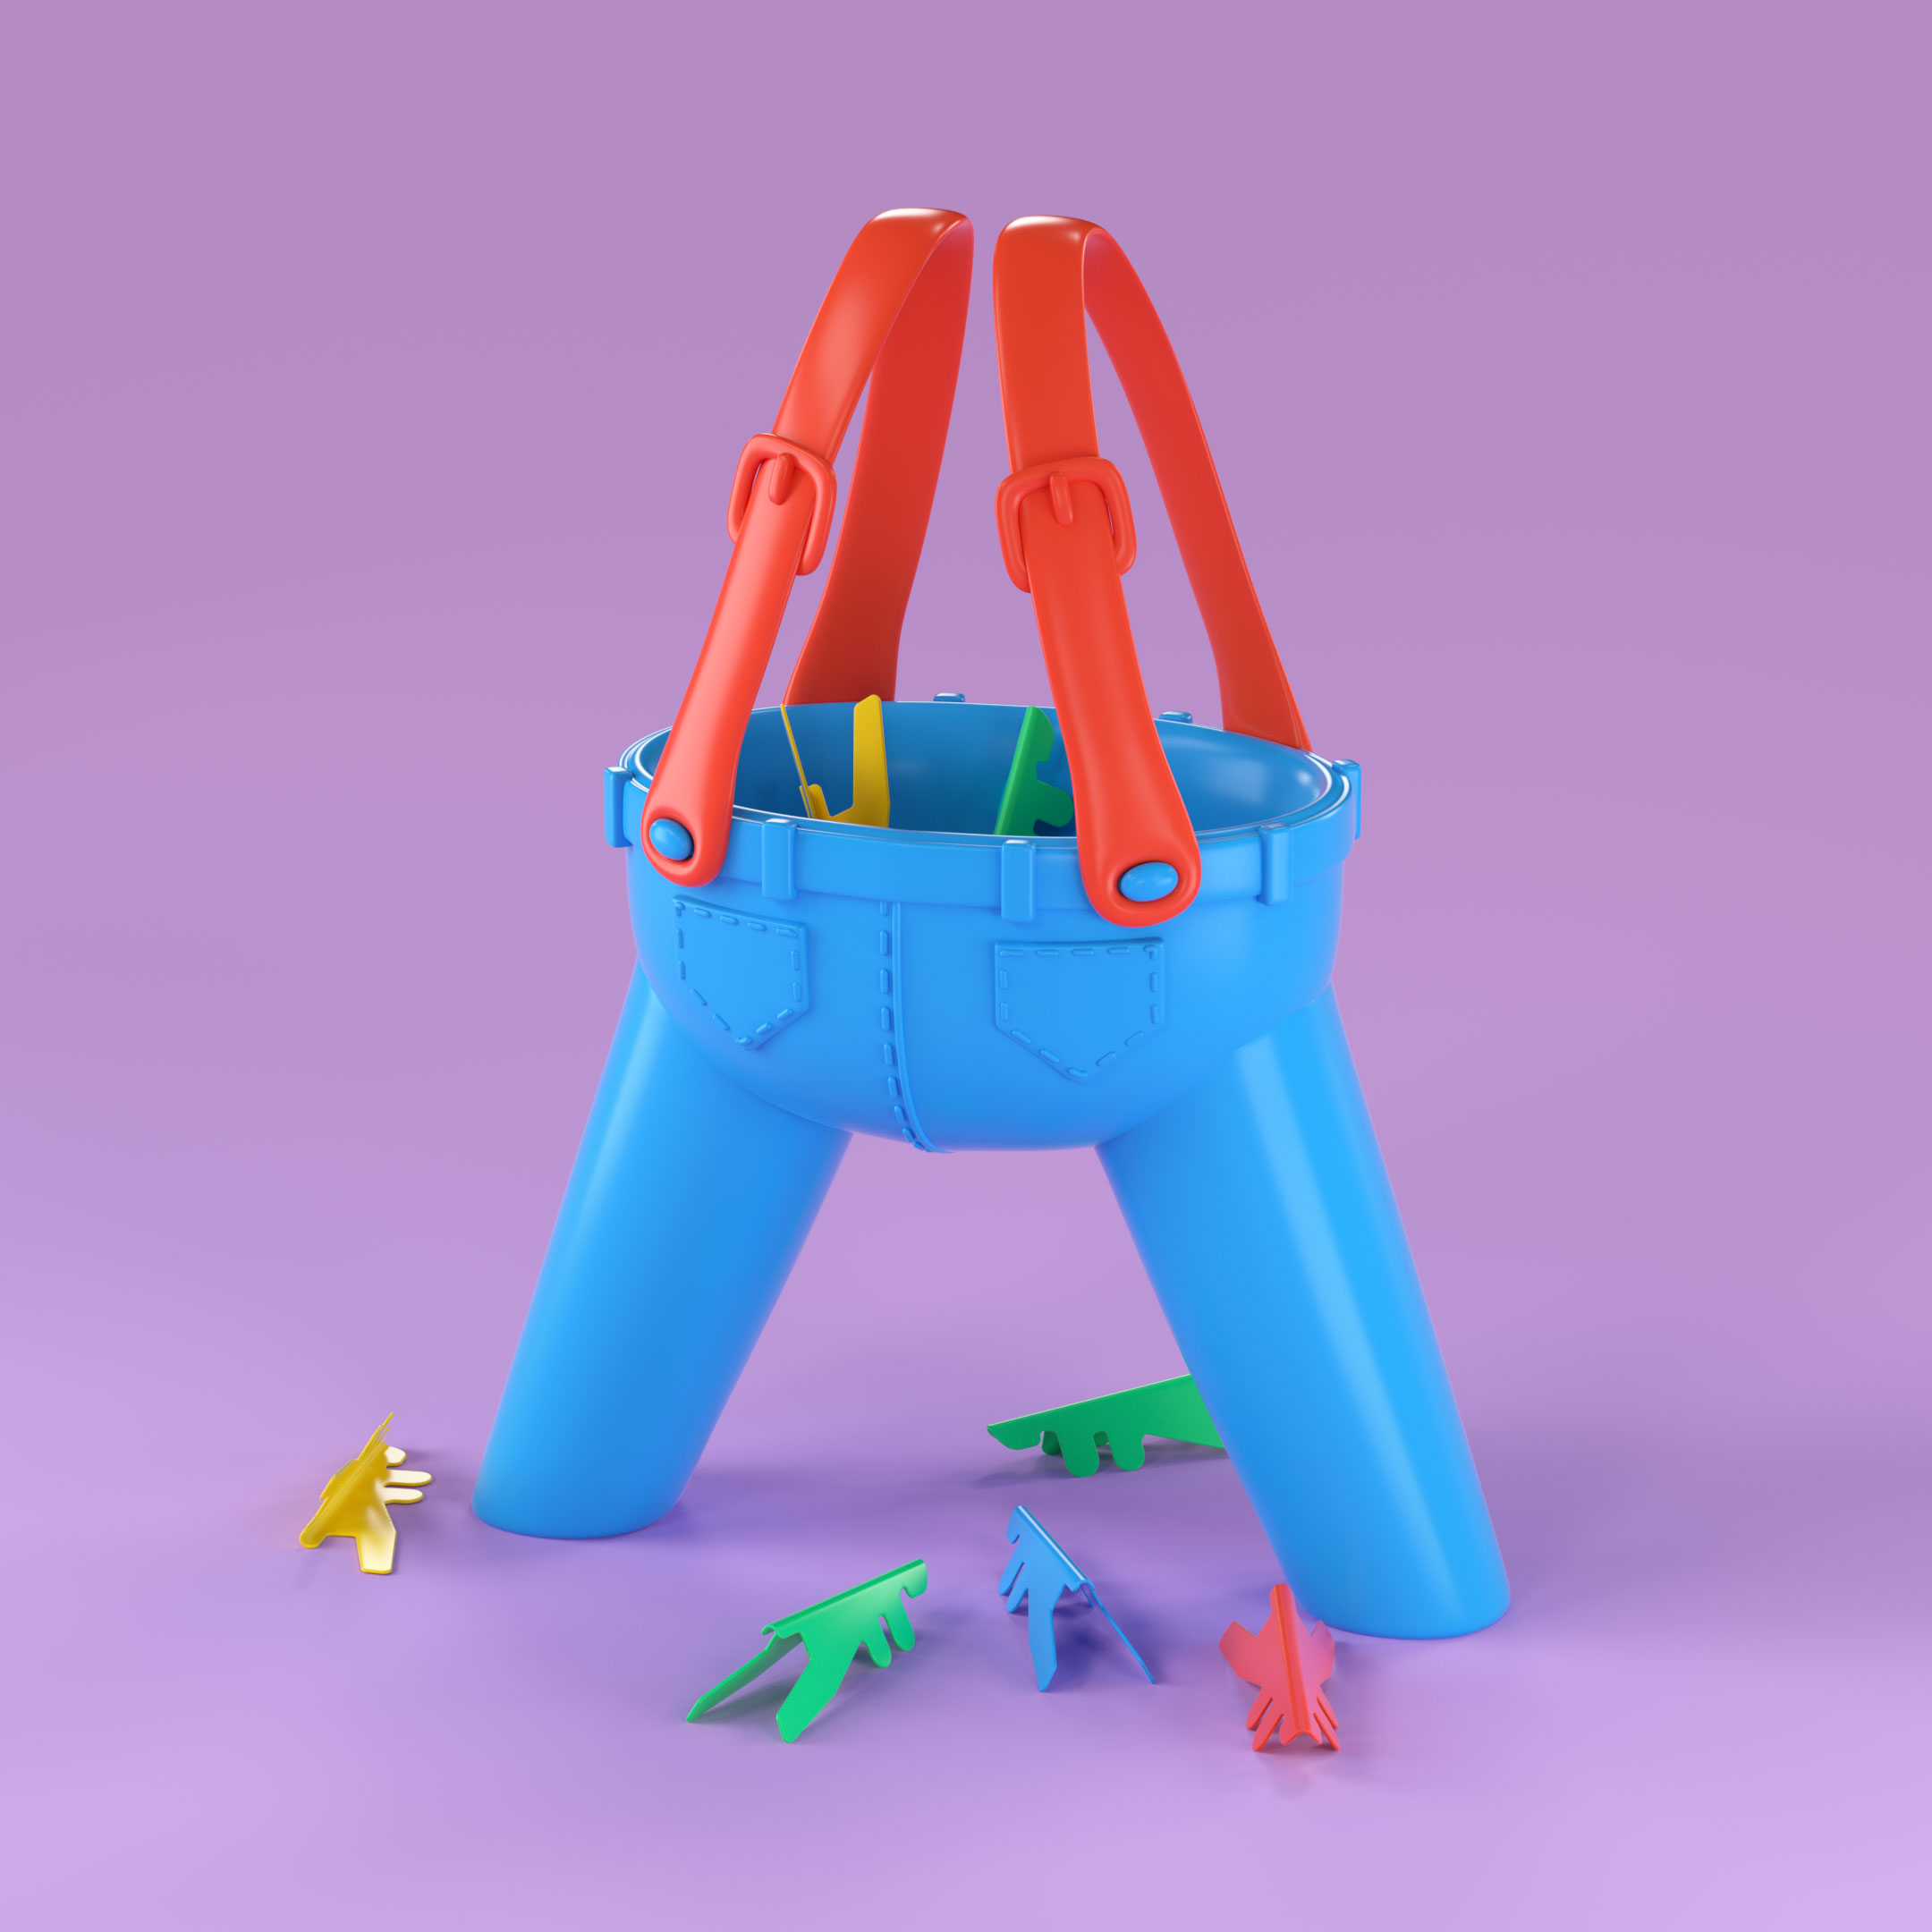 90s Ants in the Pants Game 3D Type Illustration by Noah Camp